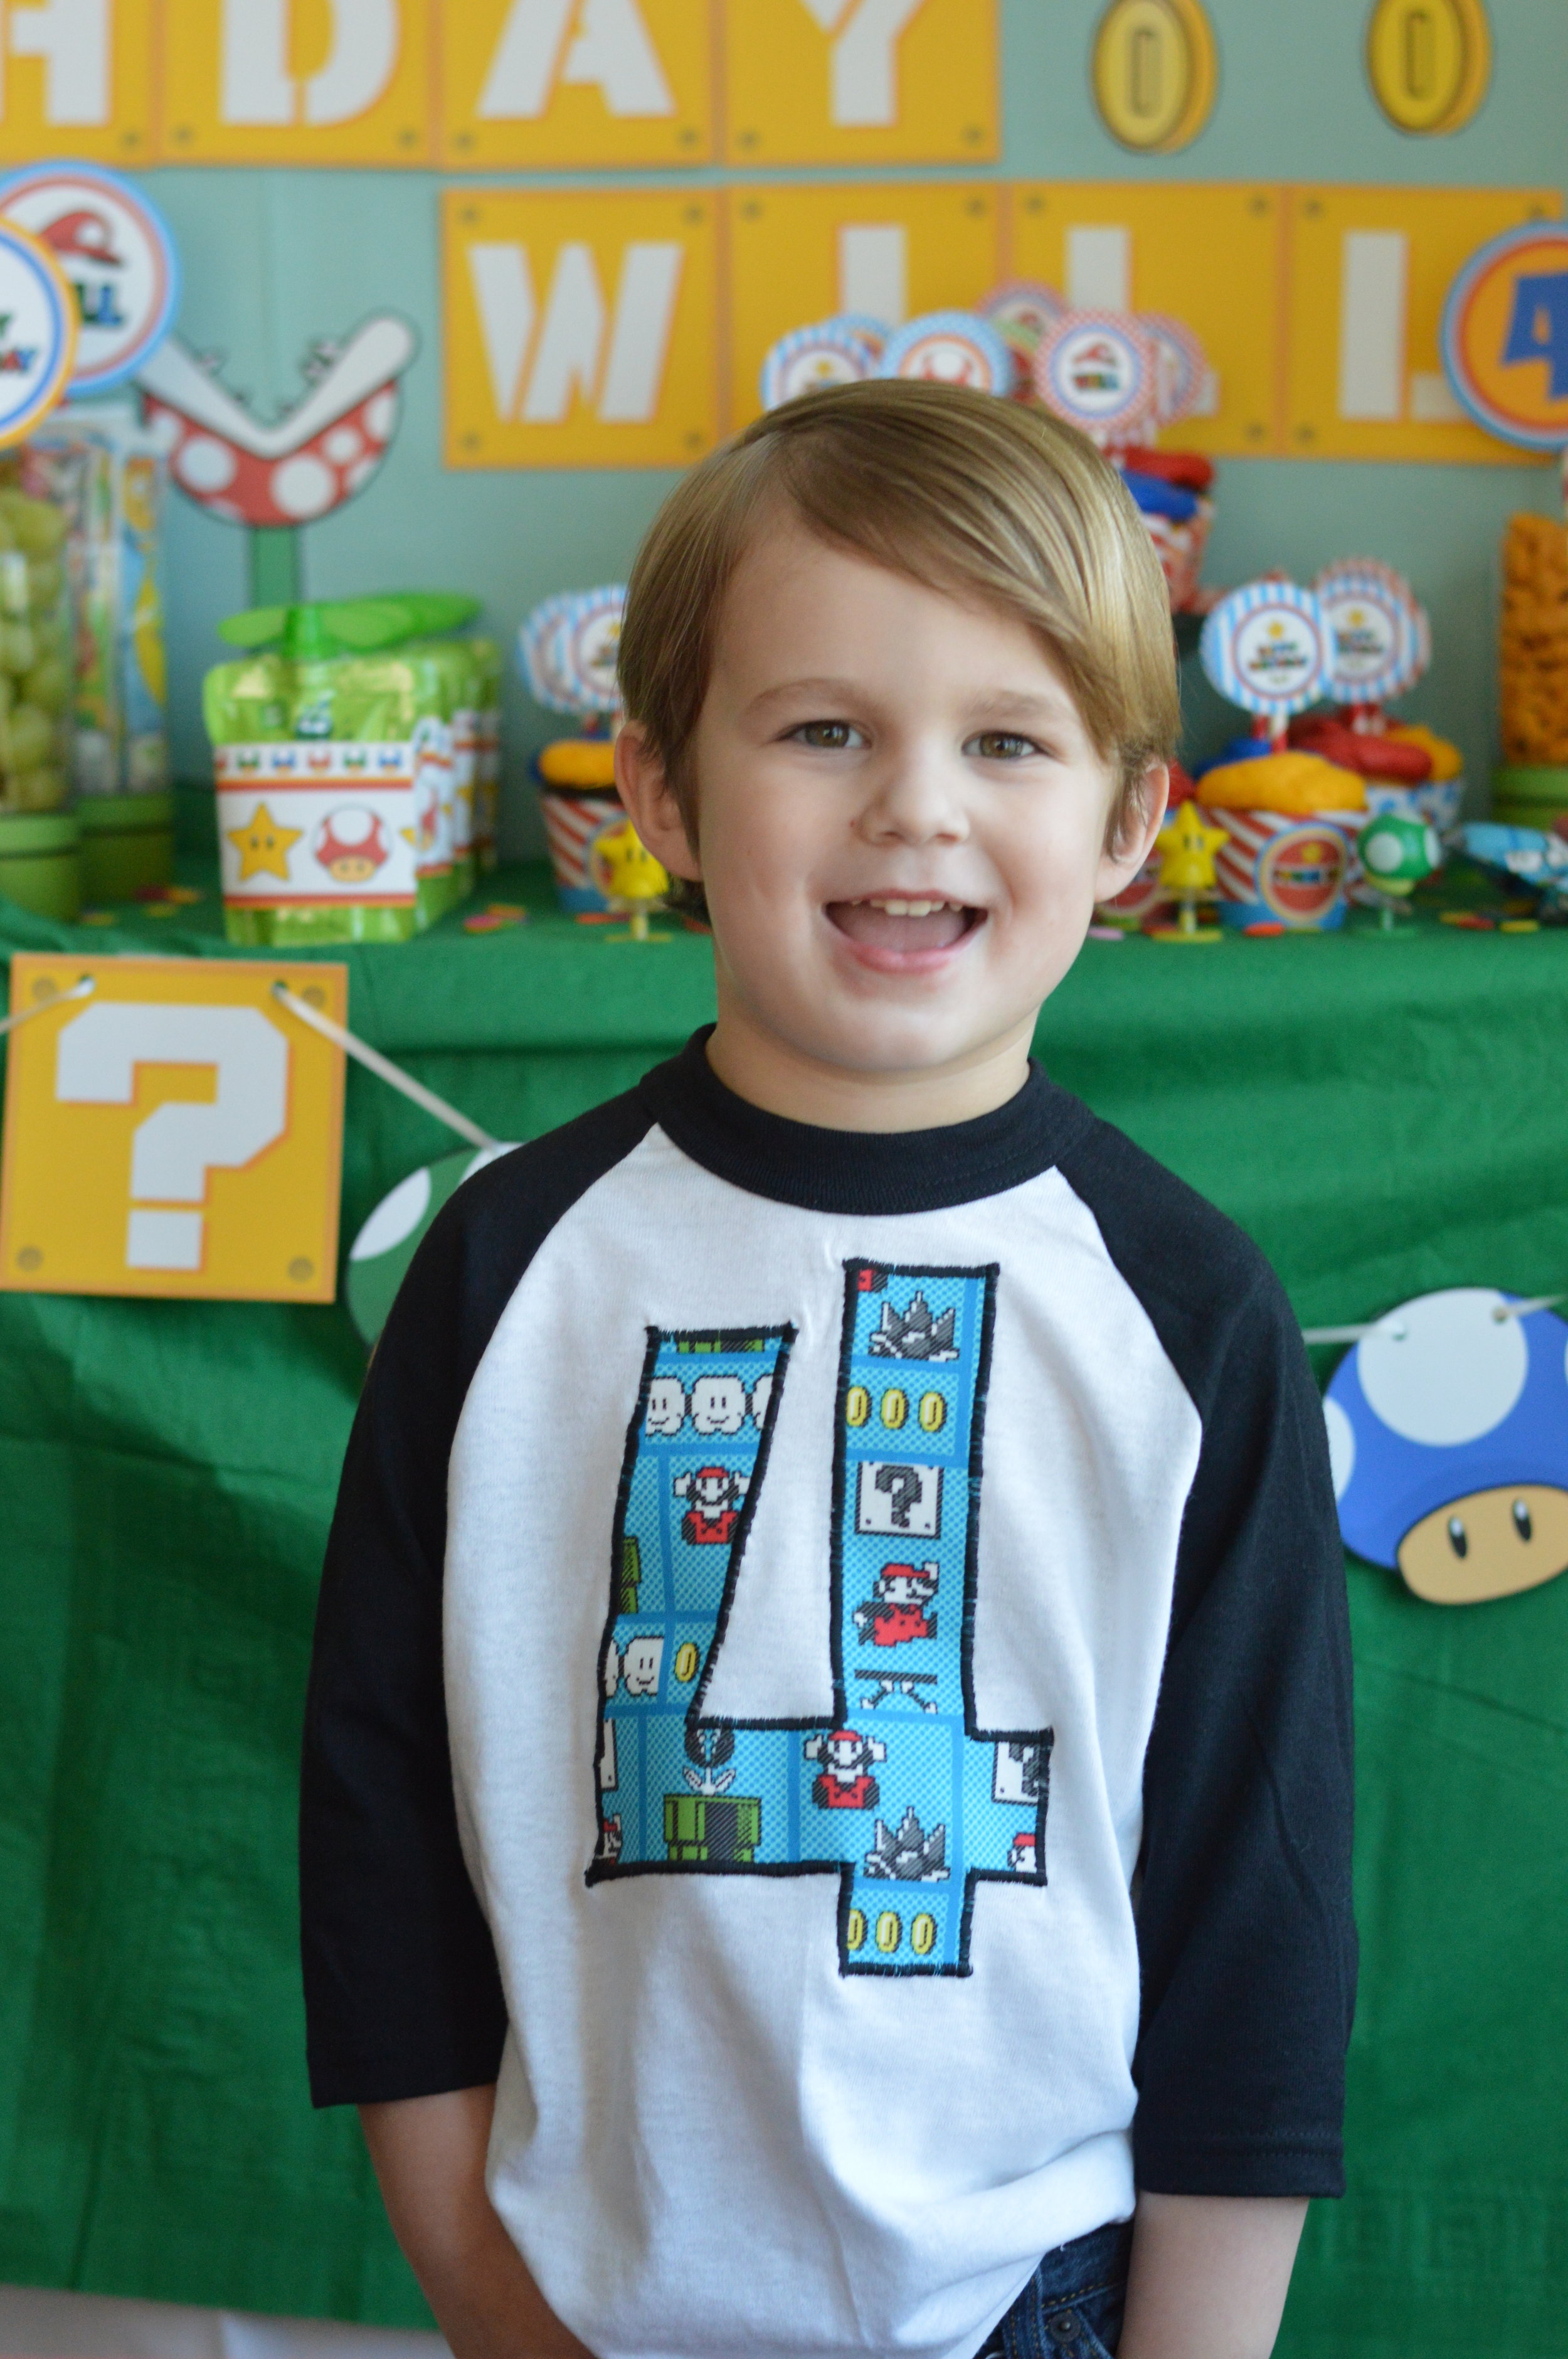 super Mario birthday shirt